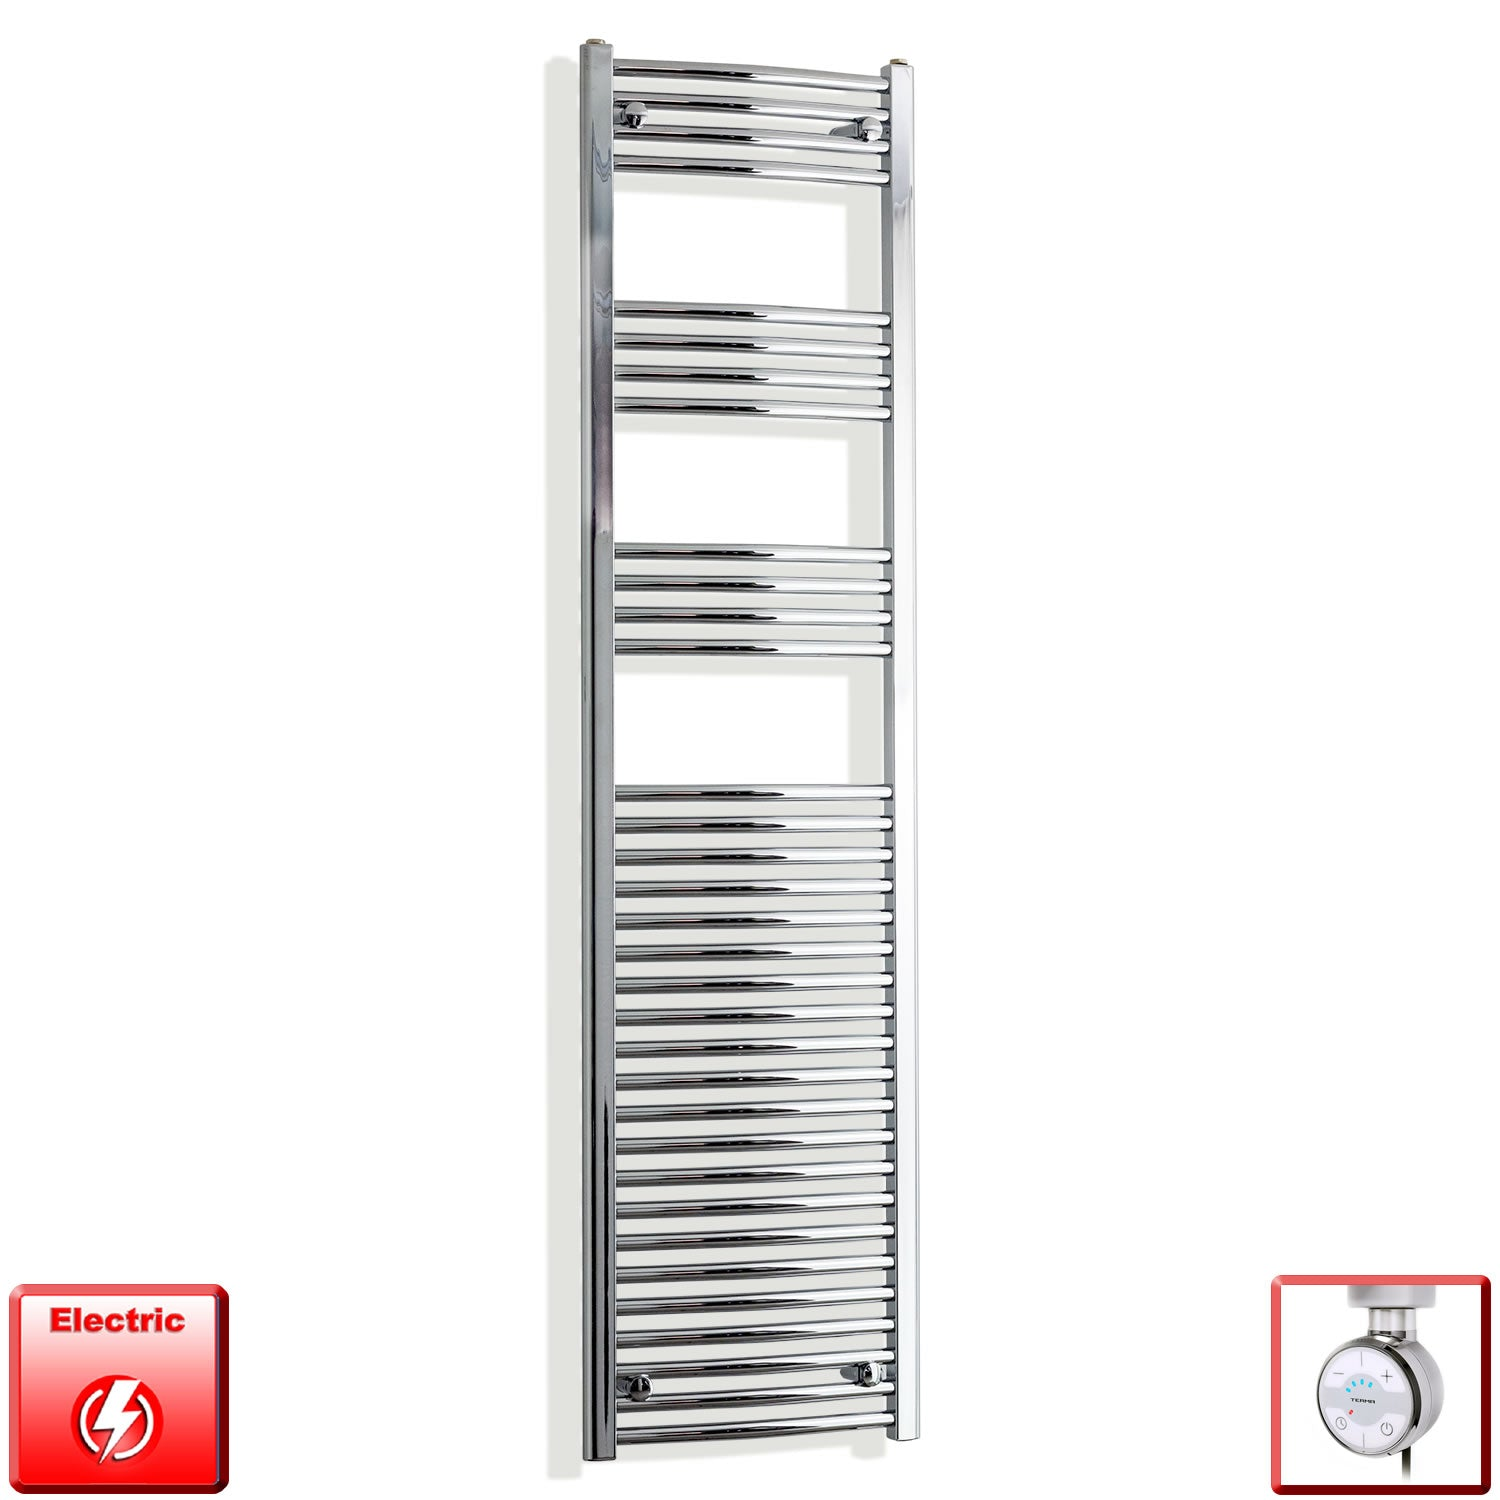 450mm Wide 1800mm High Curved Chrome Pre-Filled Electric Heated Towel Rail Radiator HTR,MOA Thermostatic Element